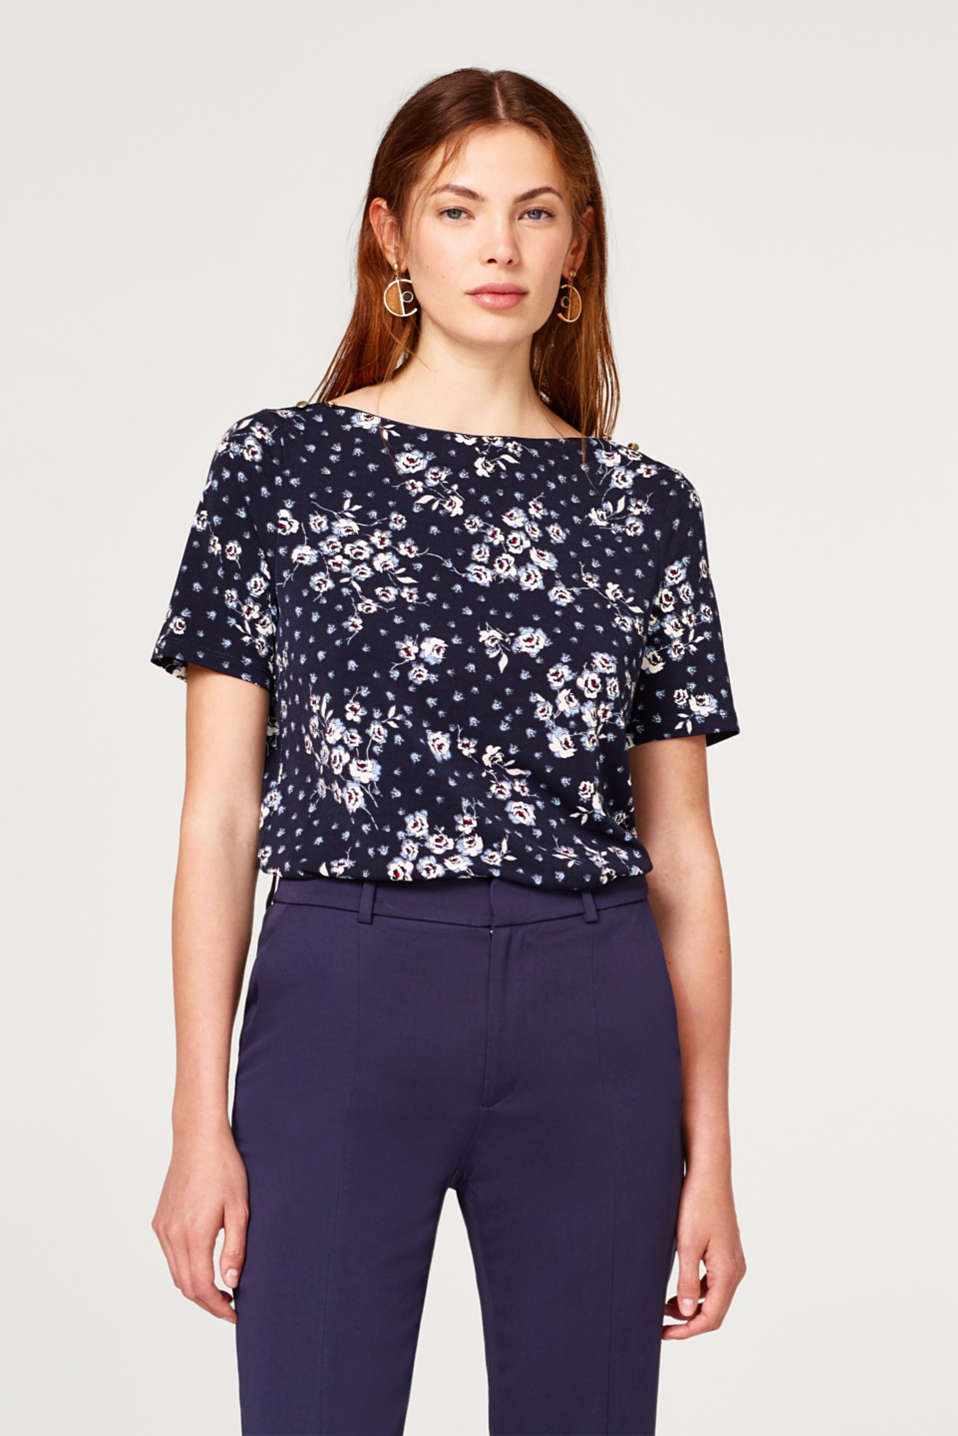 Esprit - Stretch top with a floral print